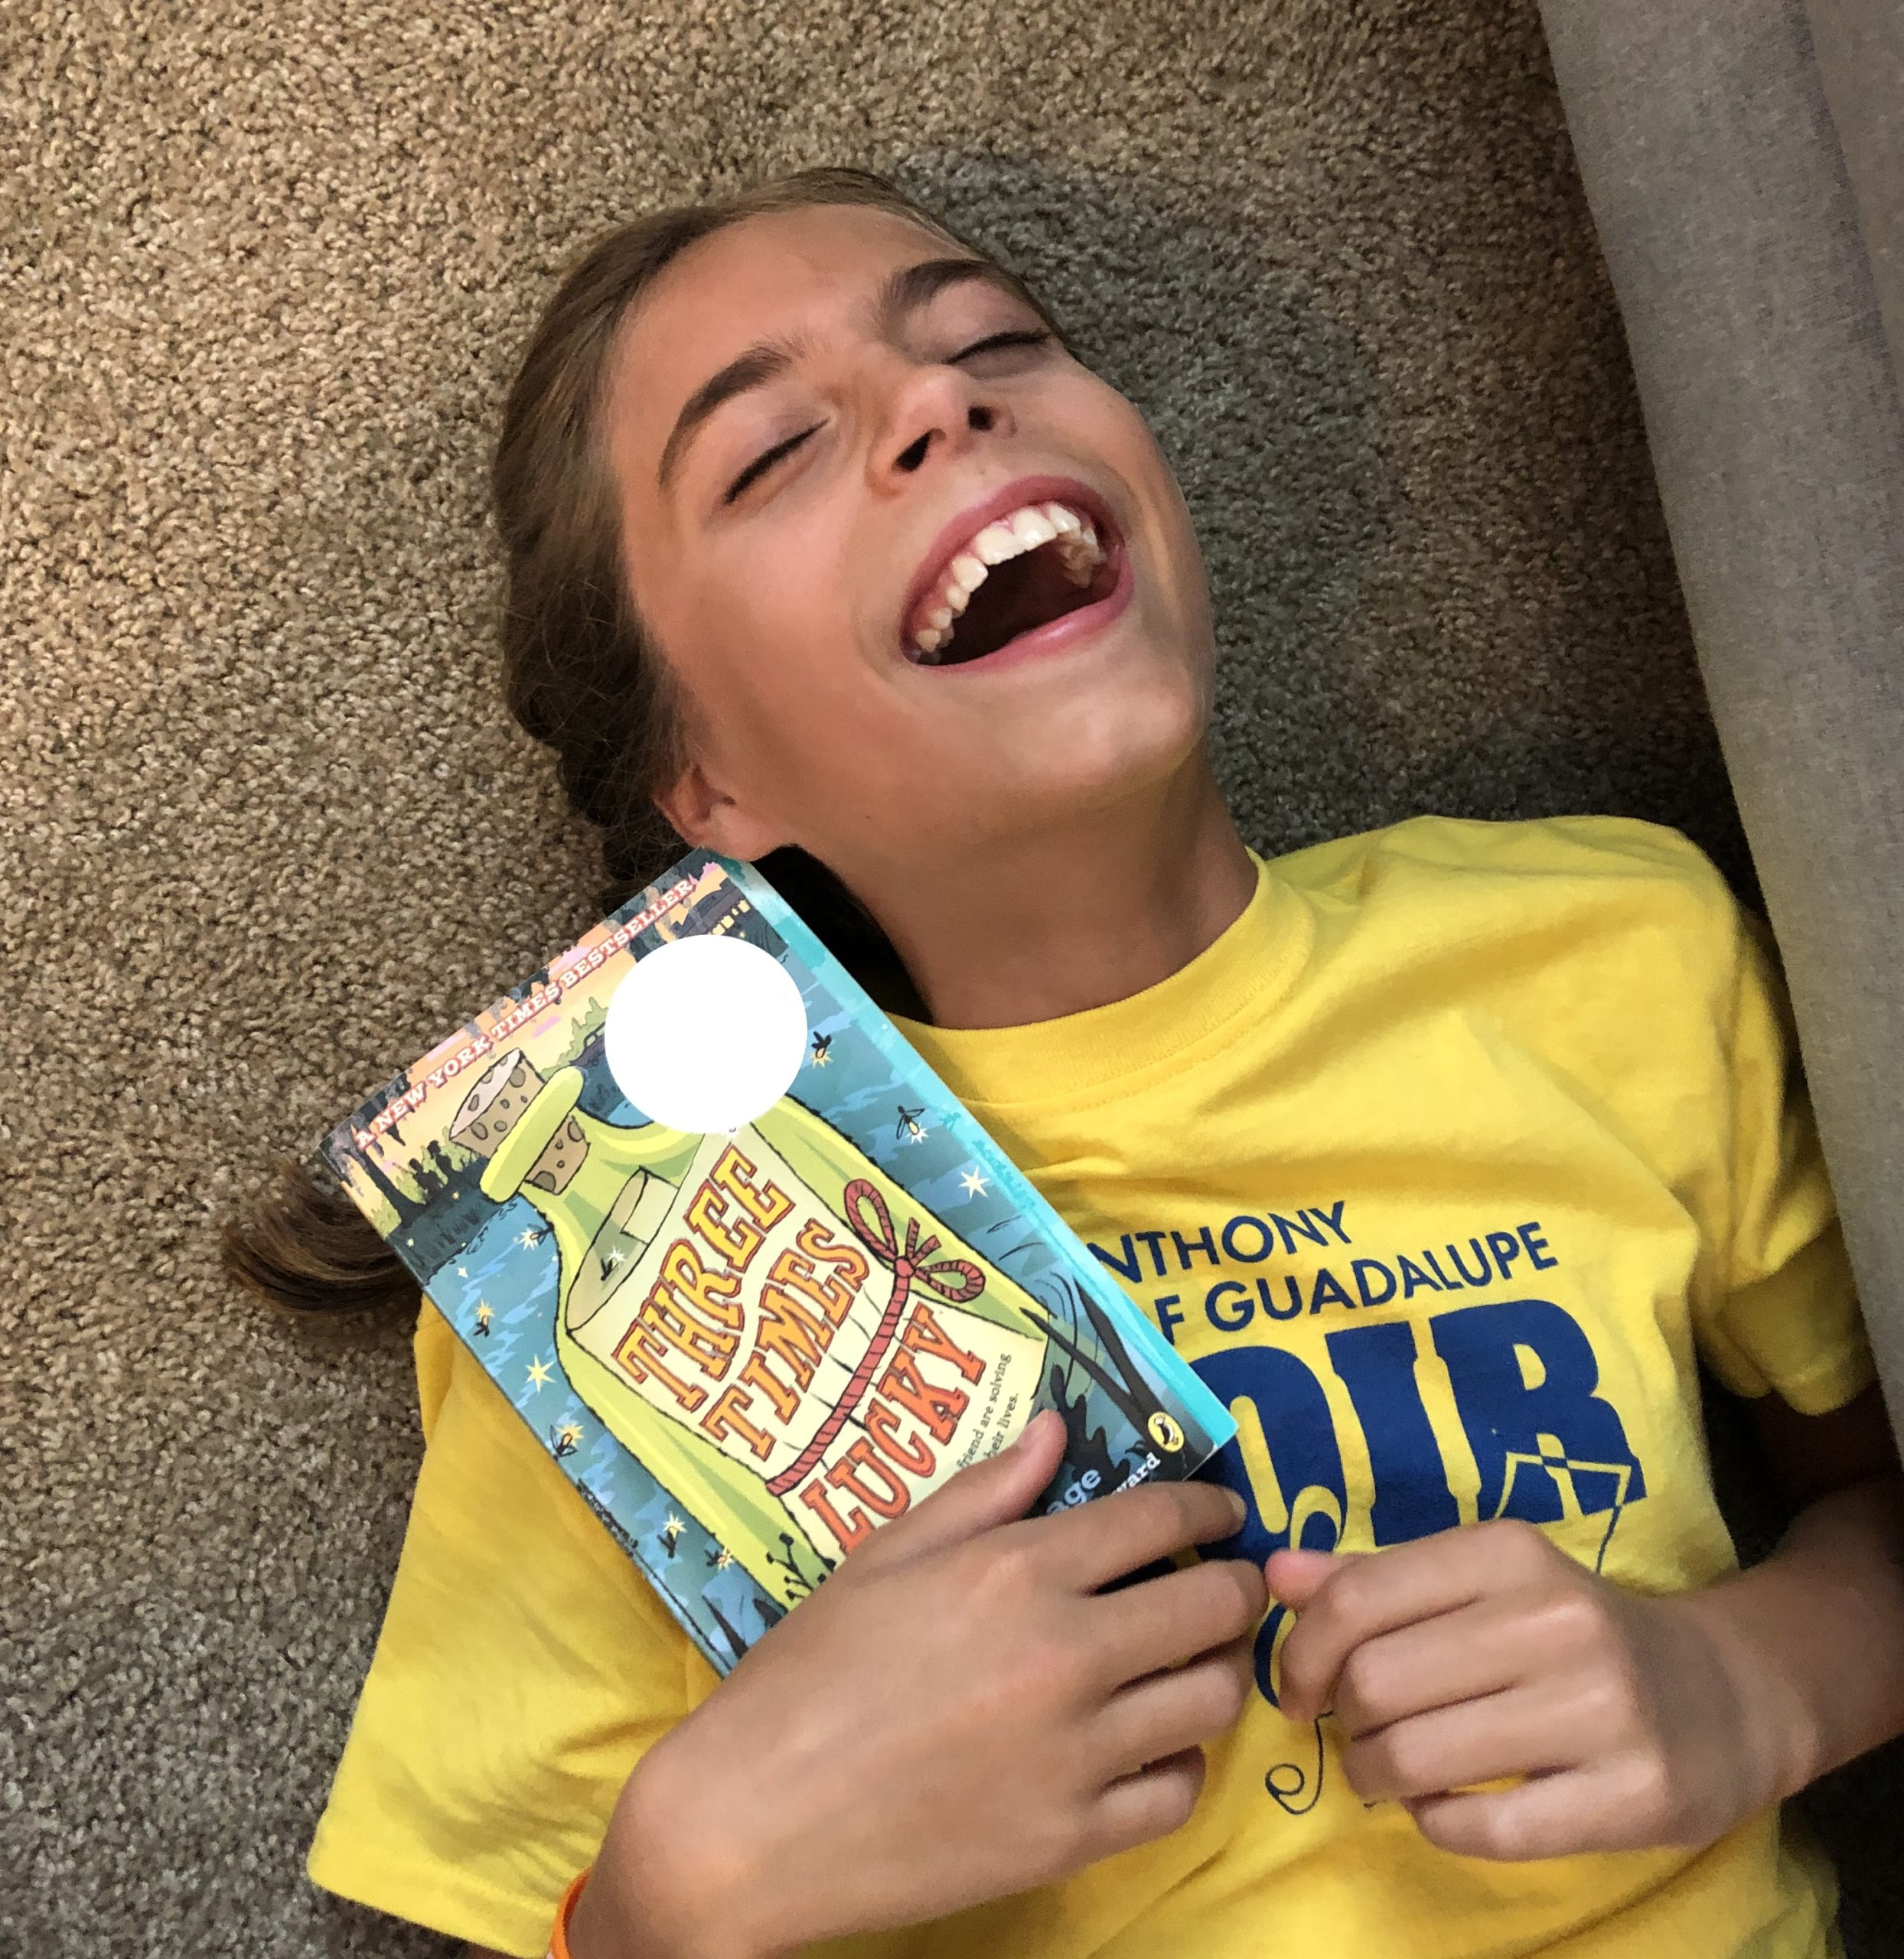 Girl with brown pigtails laughing holding the book Three Times Lucky